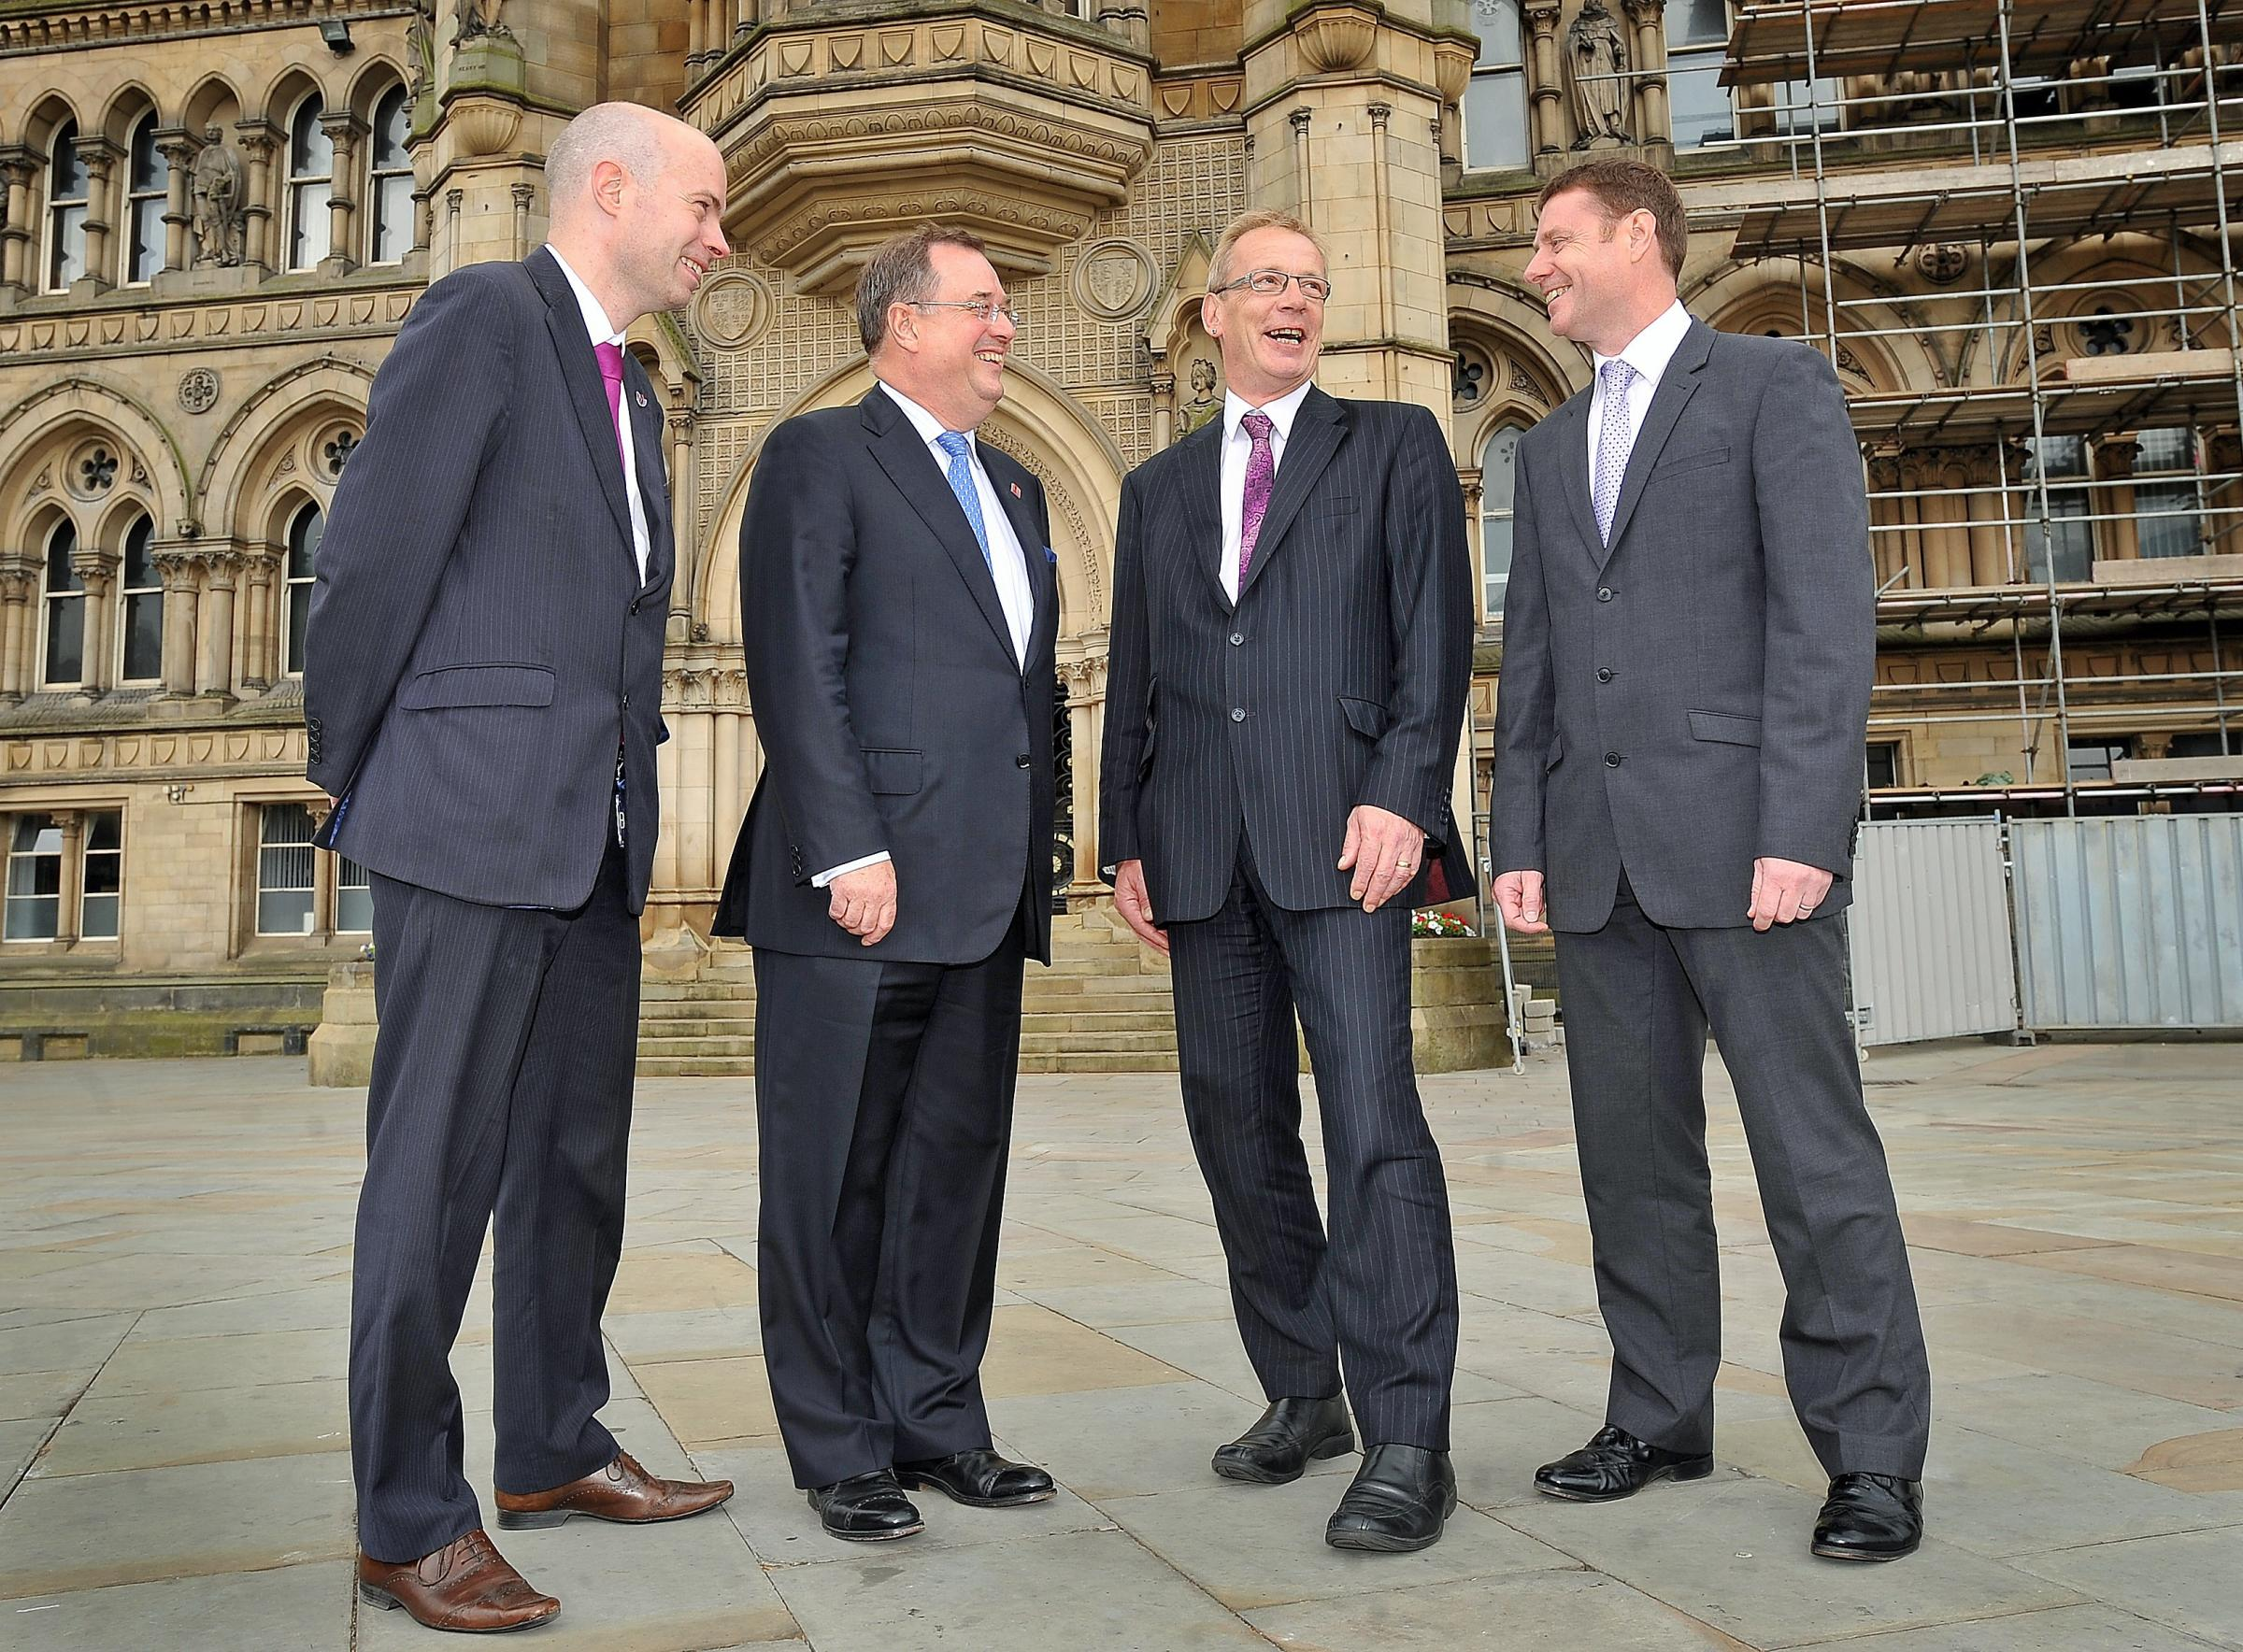 Bradford to be digital health hub with £12m scheme that will create 2,000 jobs